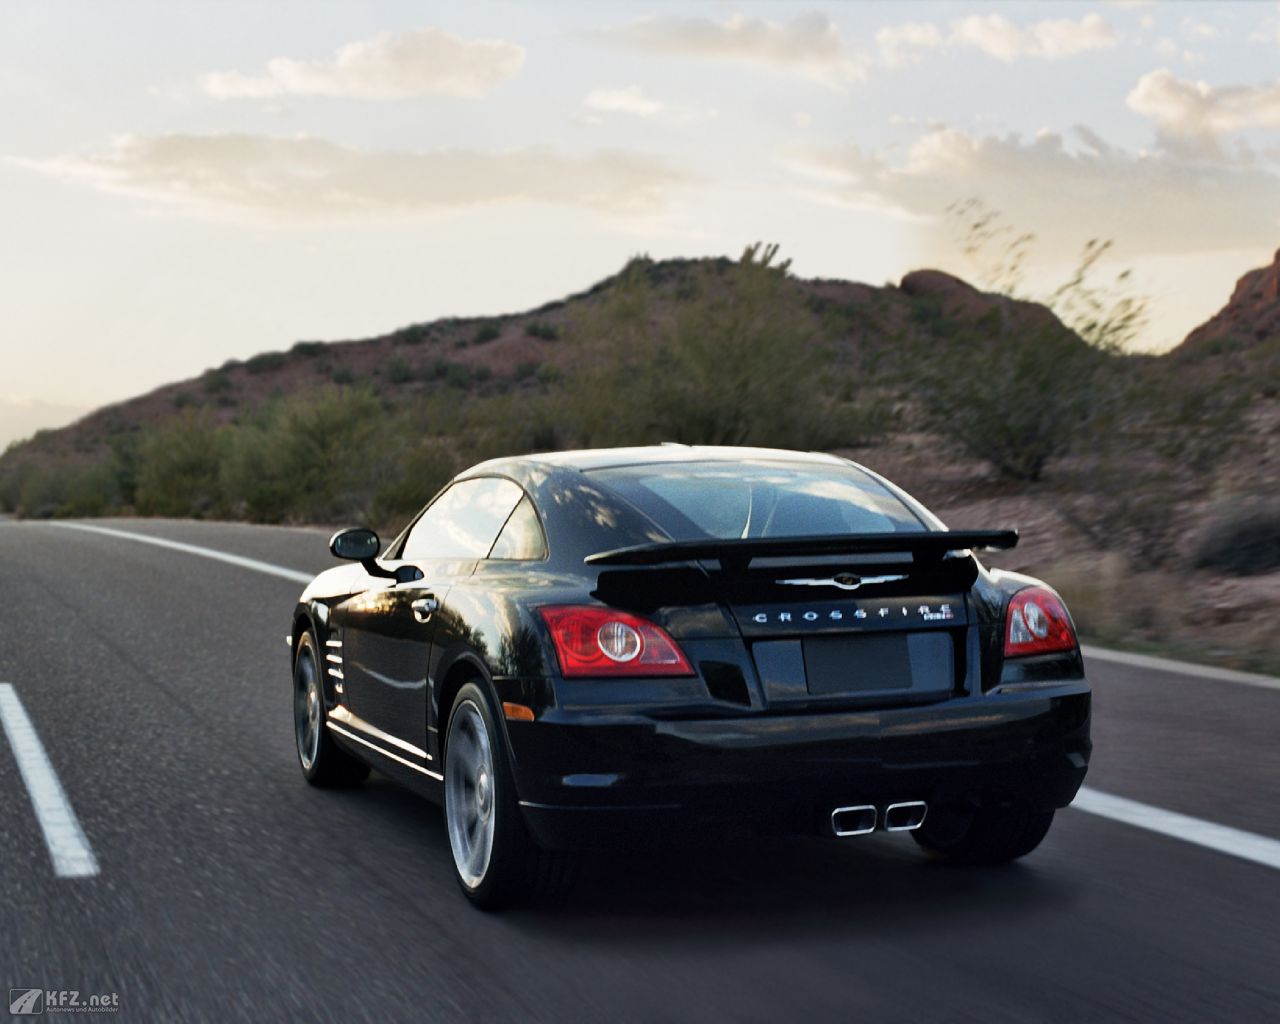 chrysler-crossfire-1280x1024-6